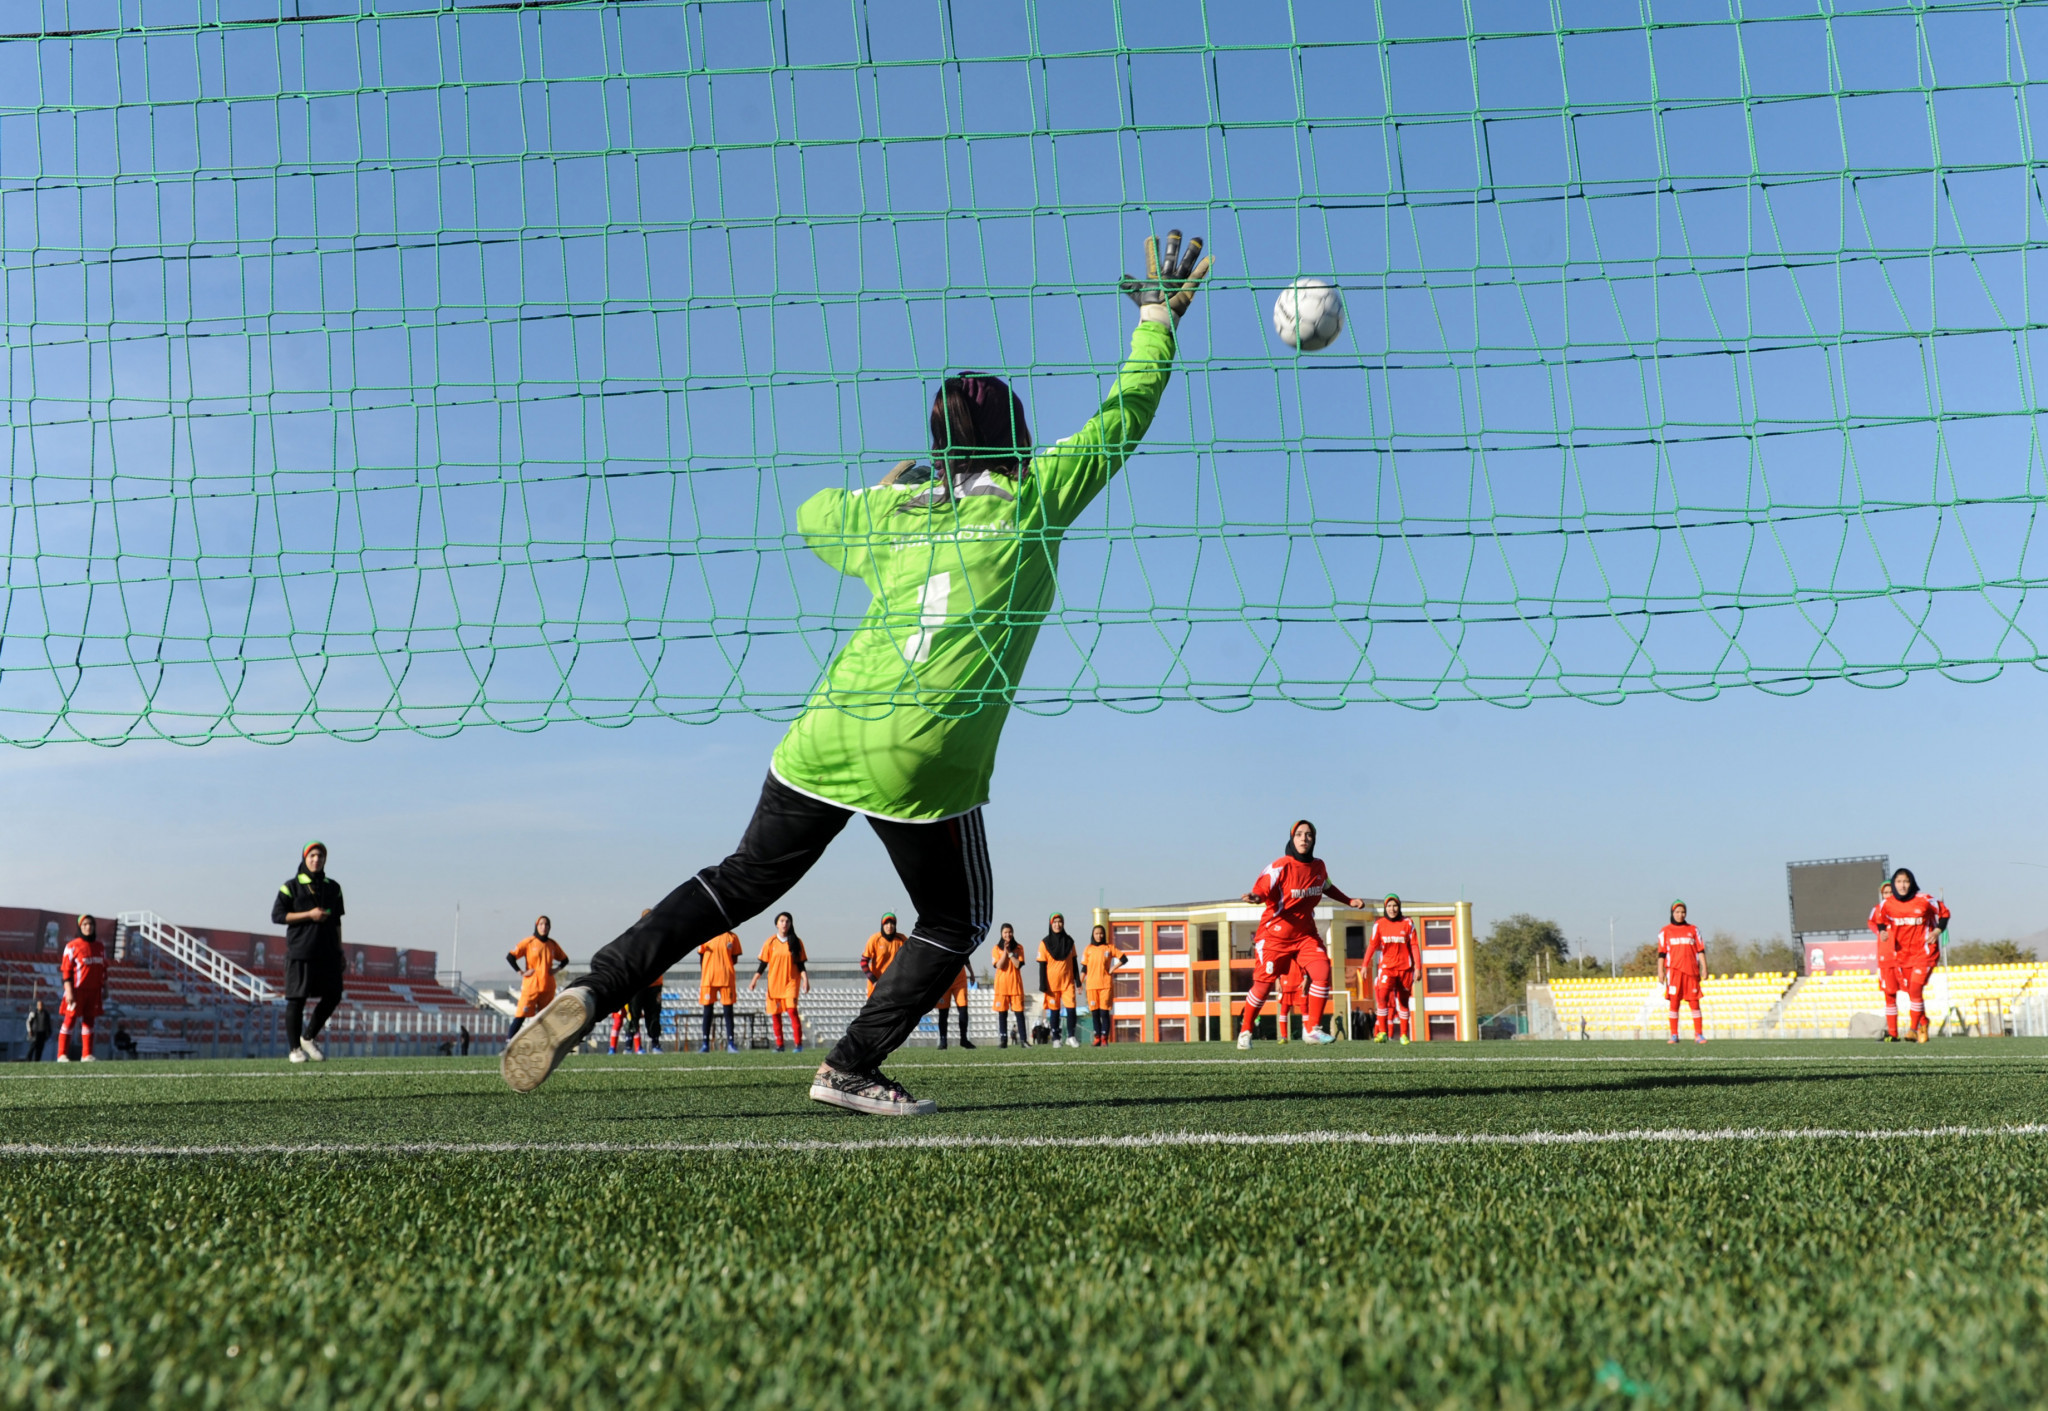 Afghanistan women's youth football players and families flee to Pakistan